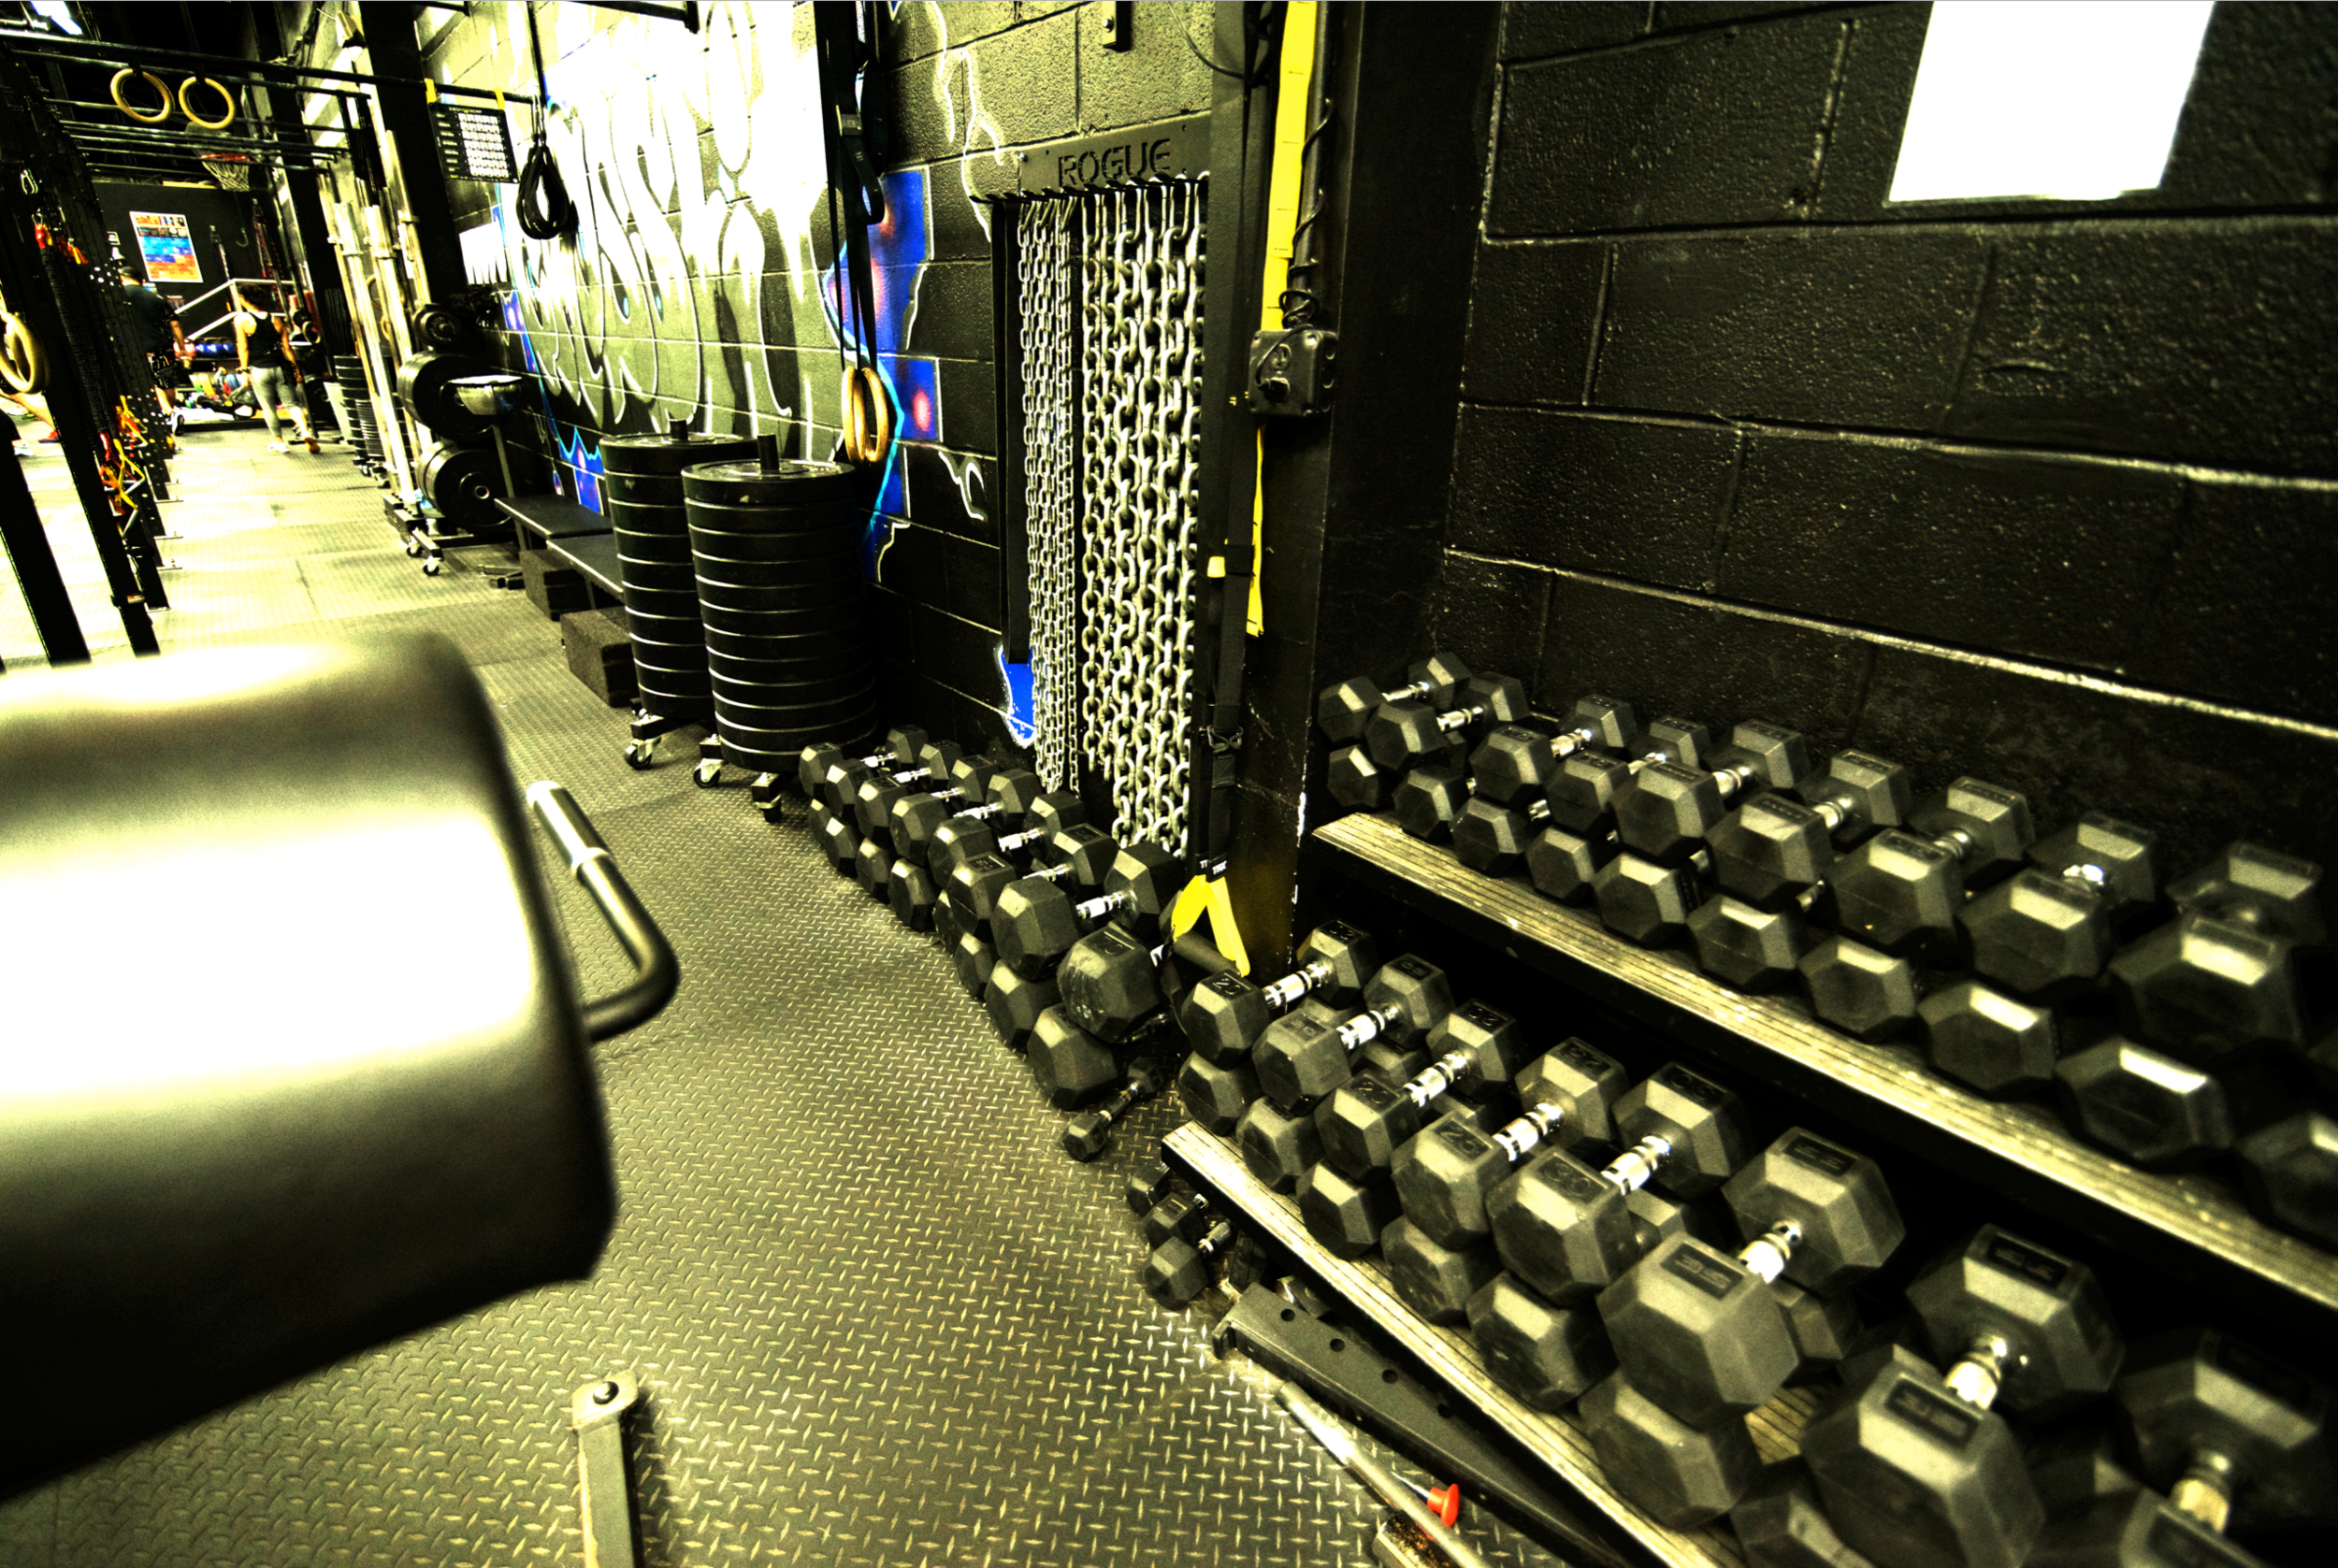 Dumbbell racks and chains HDR.png